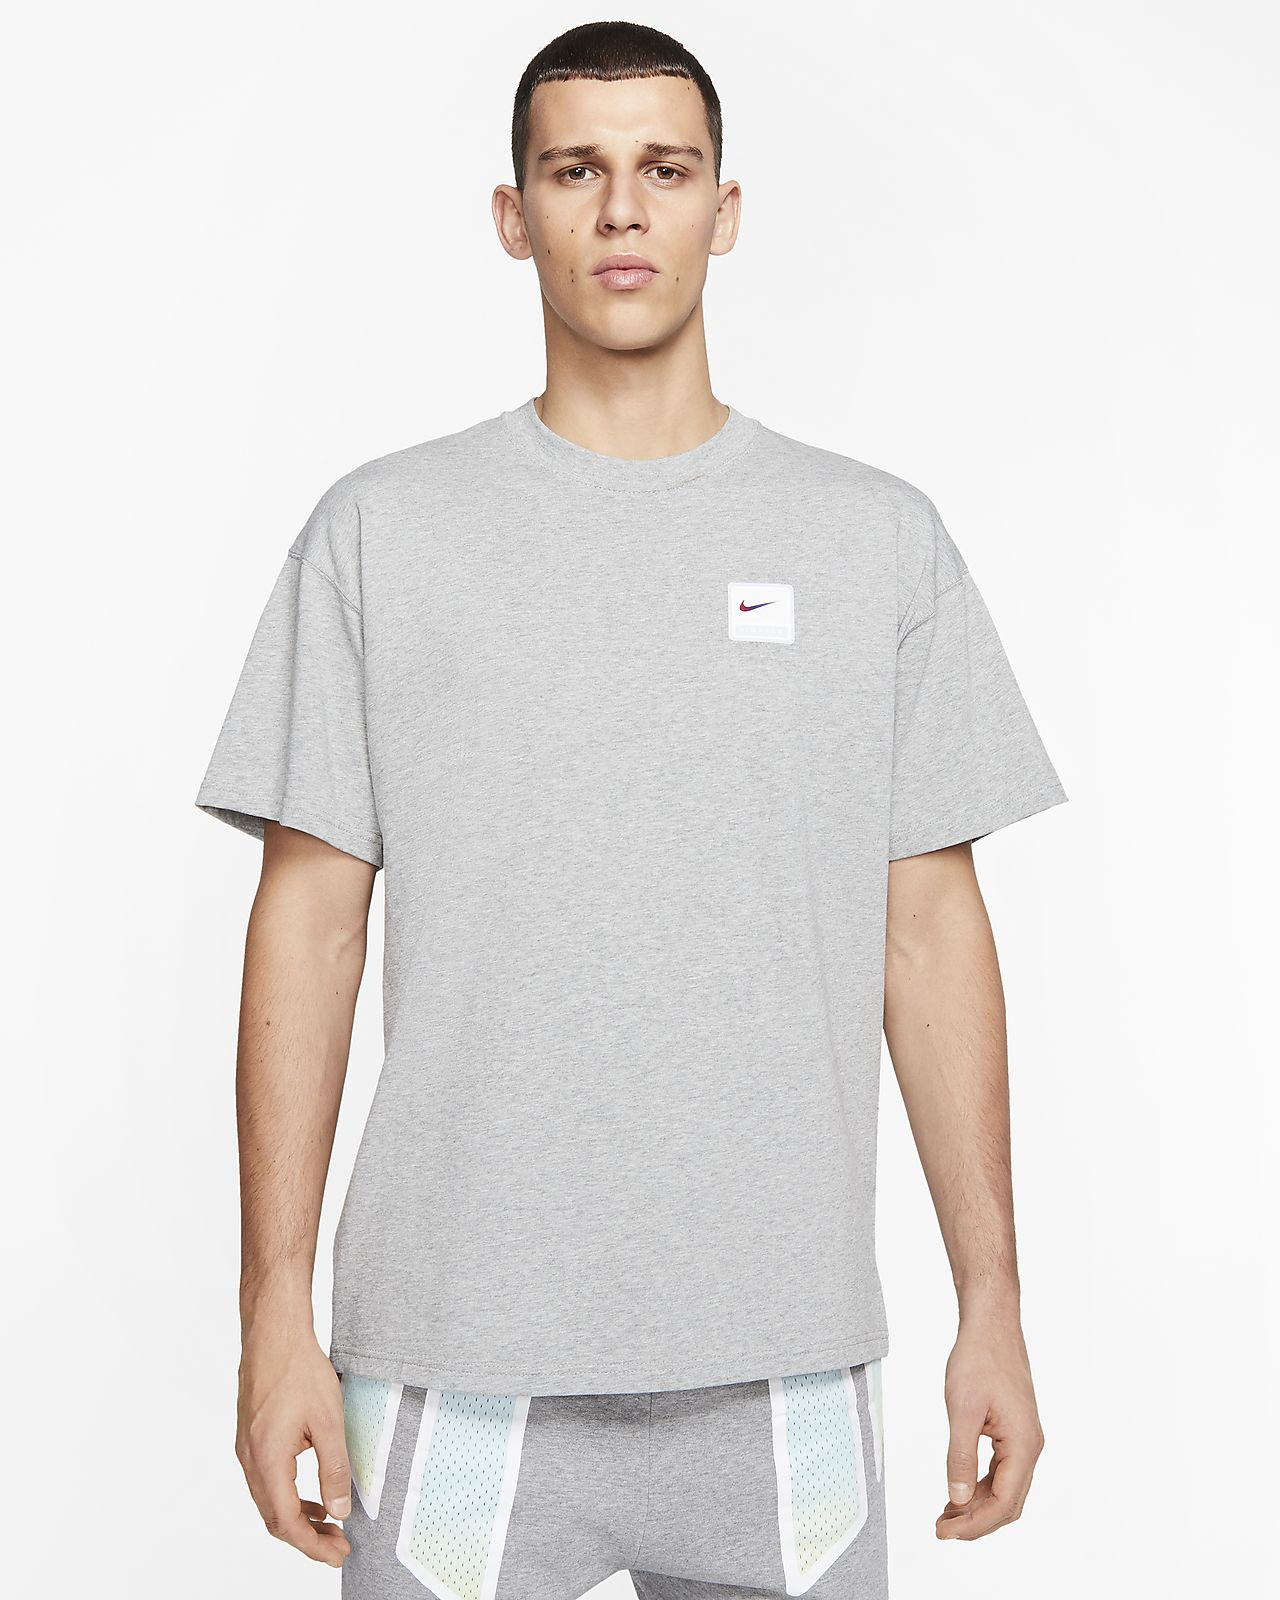 Nike x Pigalle T-Shirt